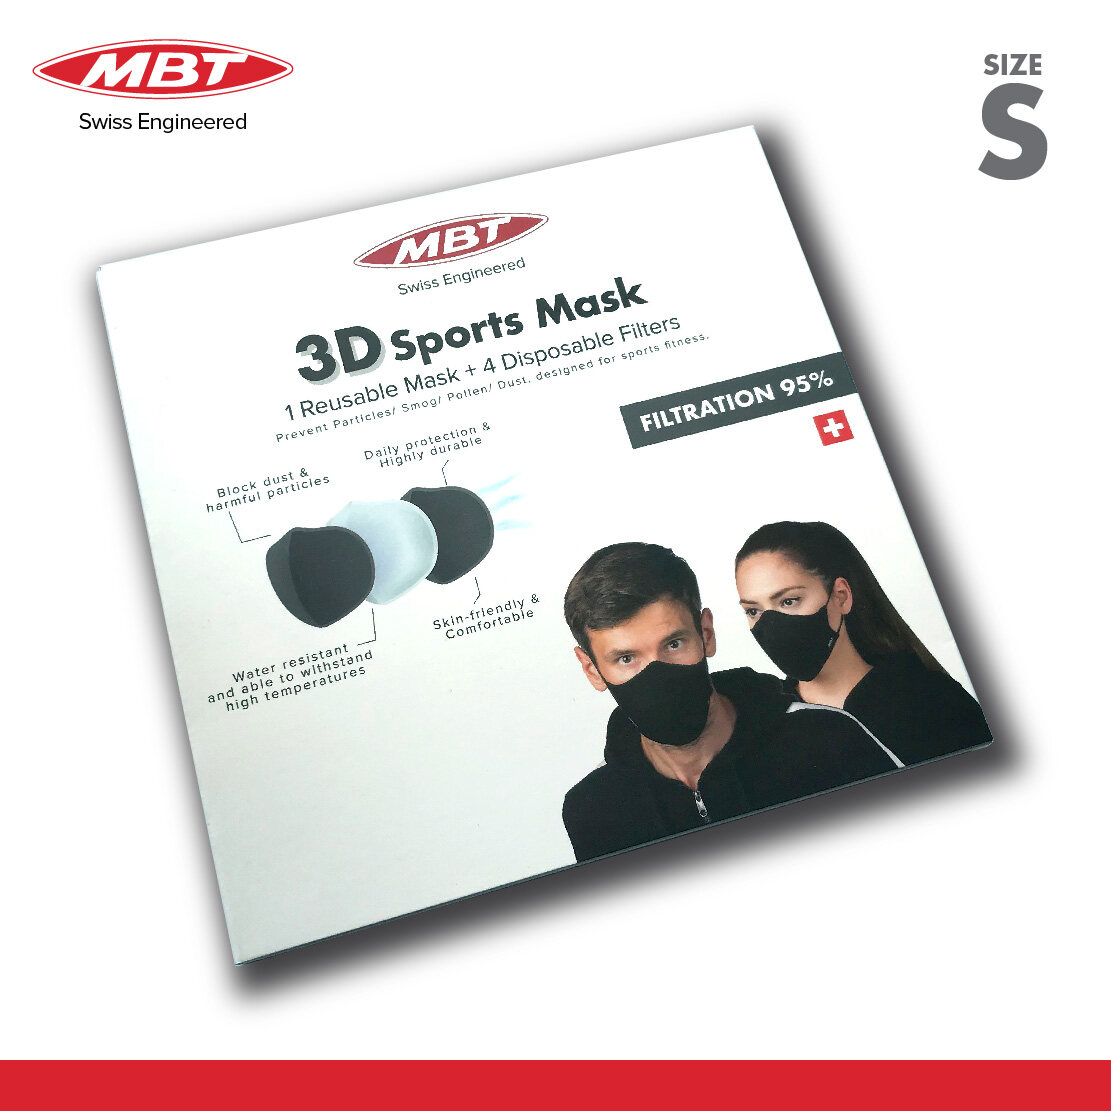 MBT 3D Sports Mask S Size With Multi-Layer Filtration